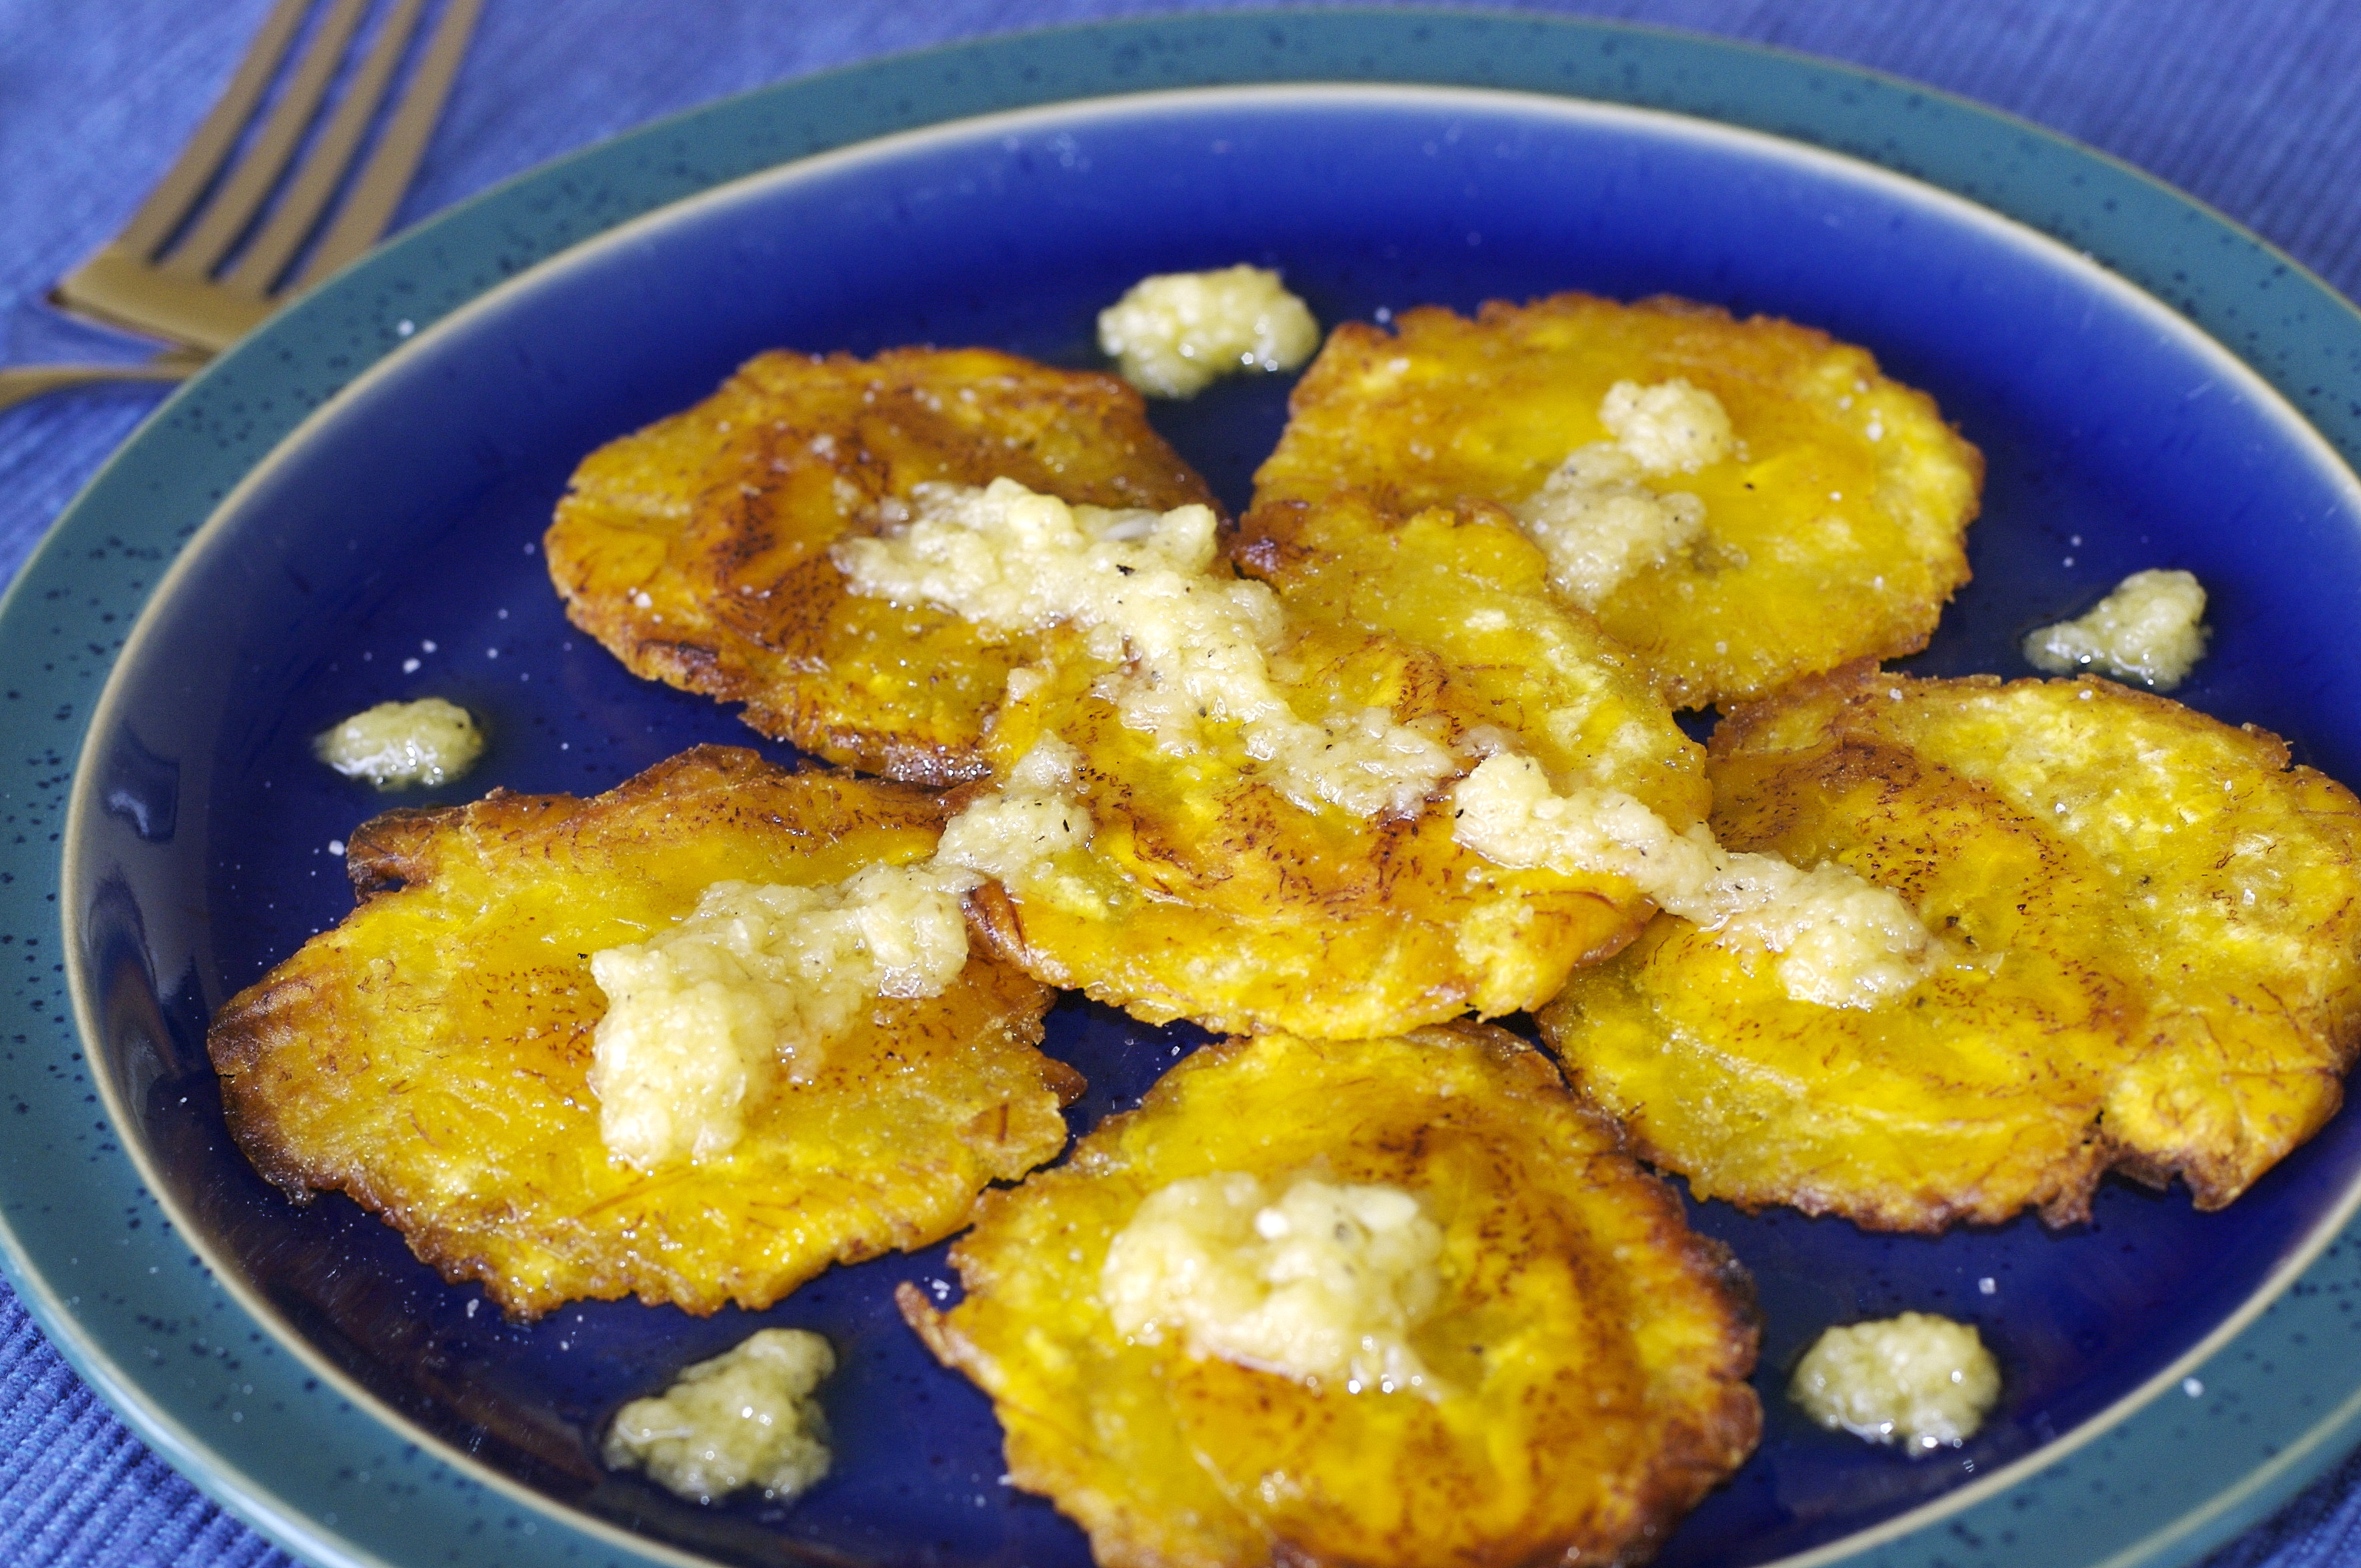 Picture of Tostones (Fried Plantains)